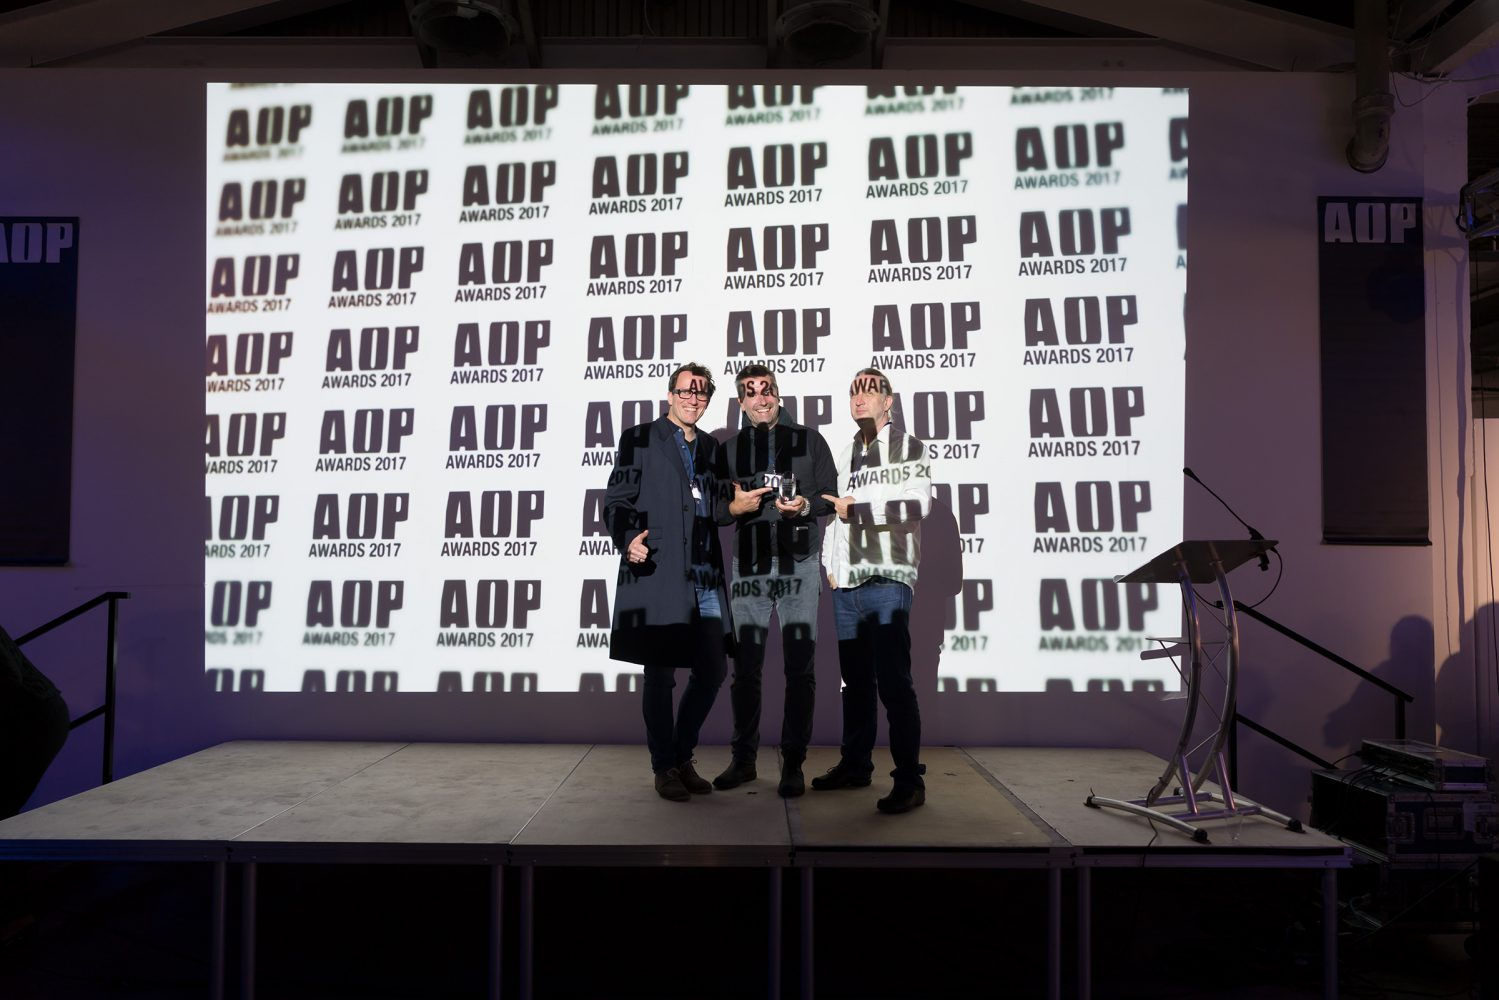 AOP Award 2017 in London